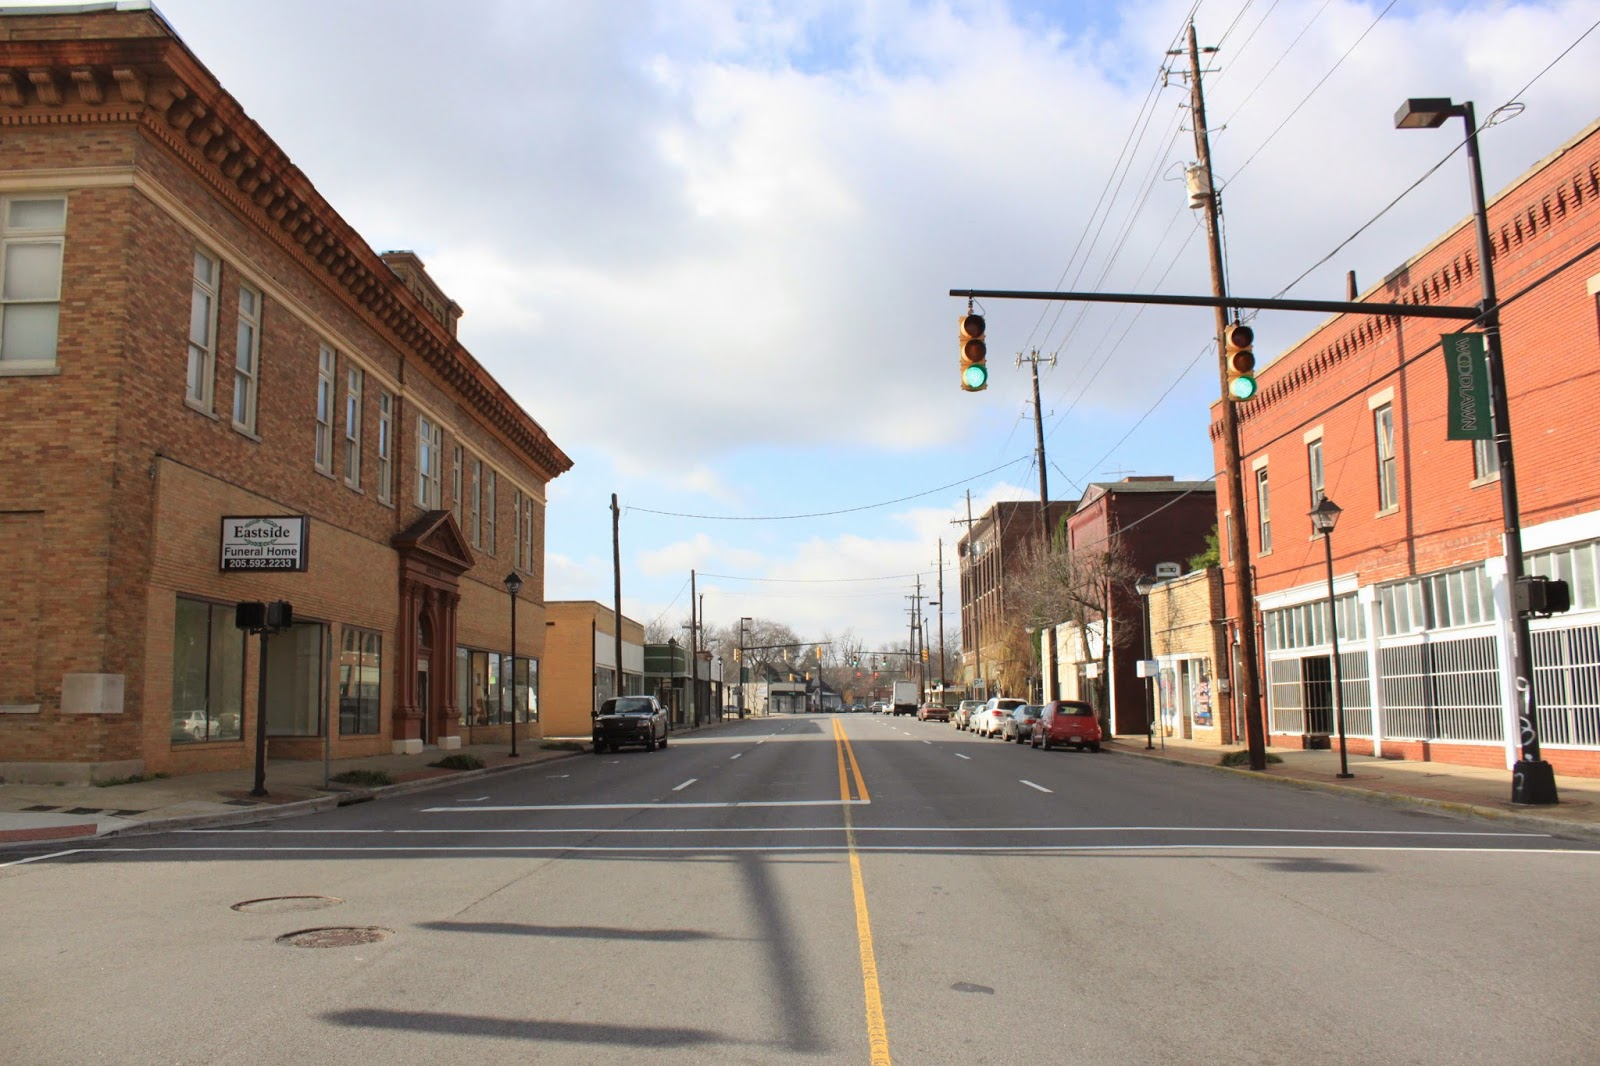 An image of street of woodlawn downtown